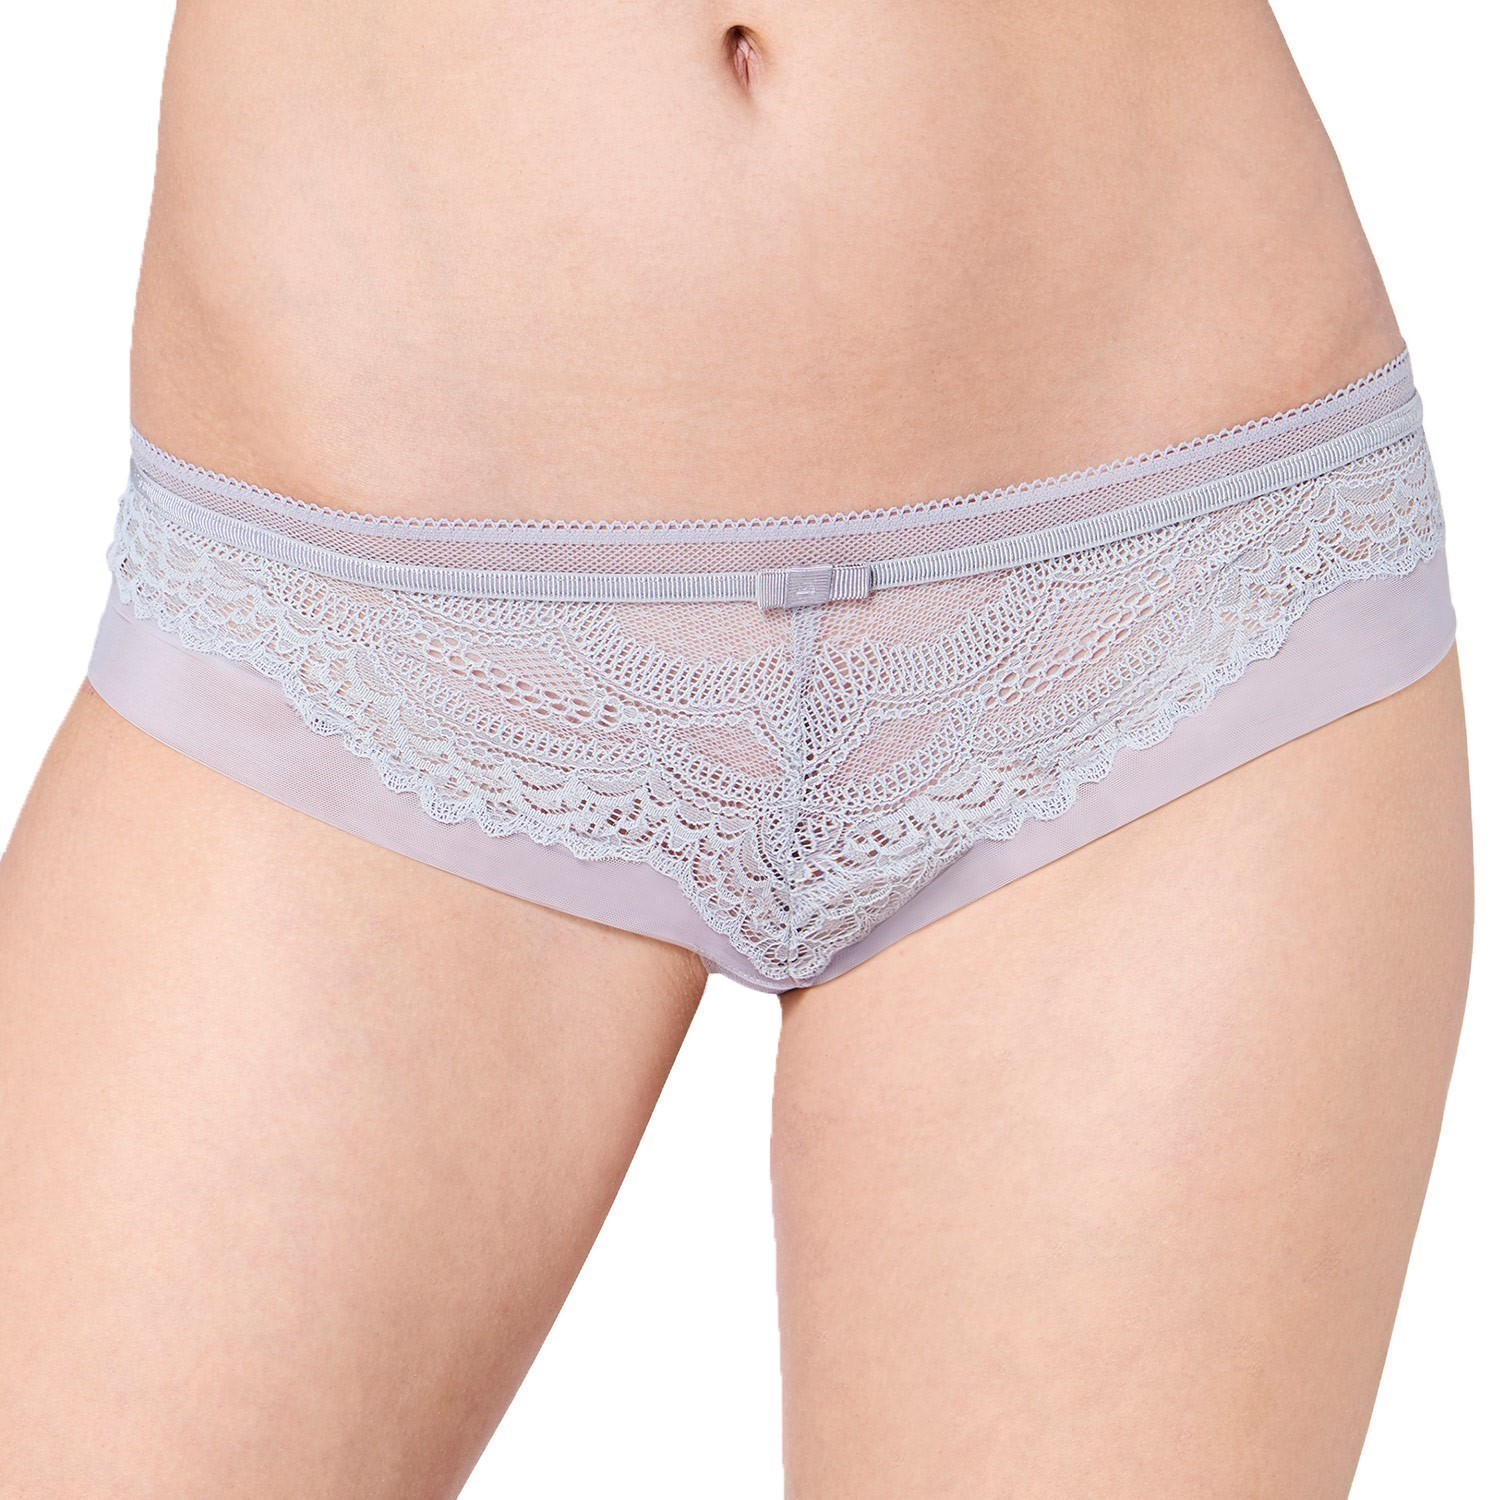 Triumph Beauty-Full Darling Hipster Brief 10156817 Femme Knickers Neuf Lingerie